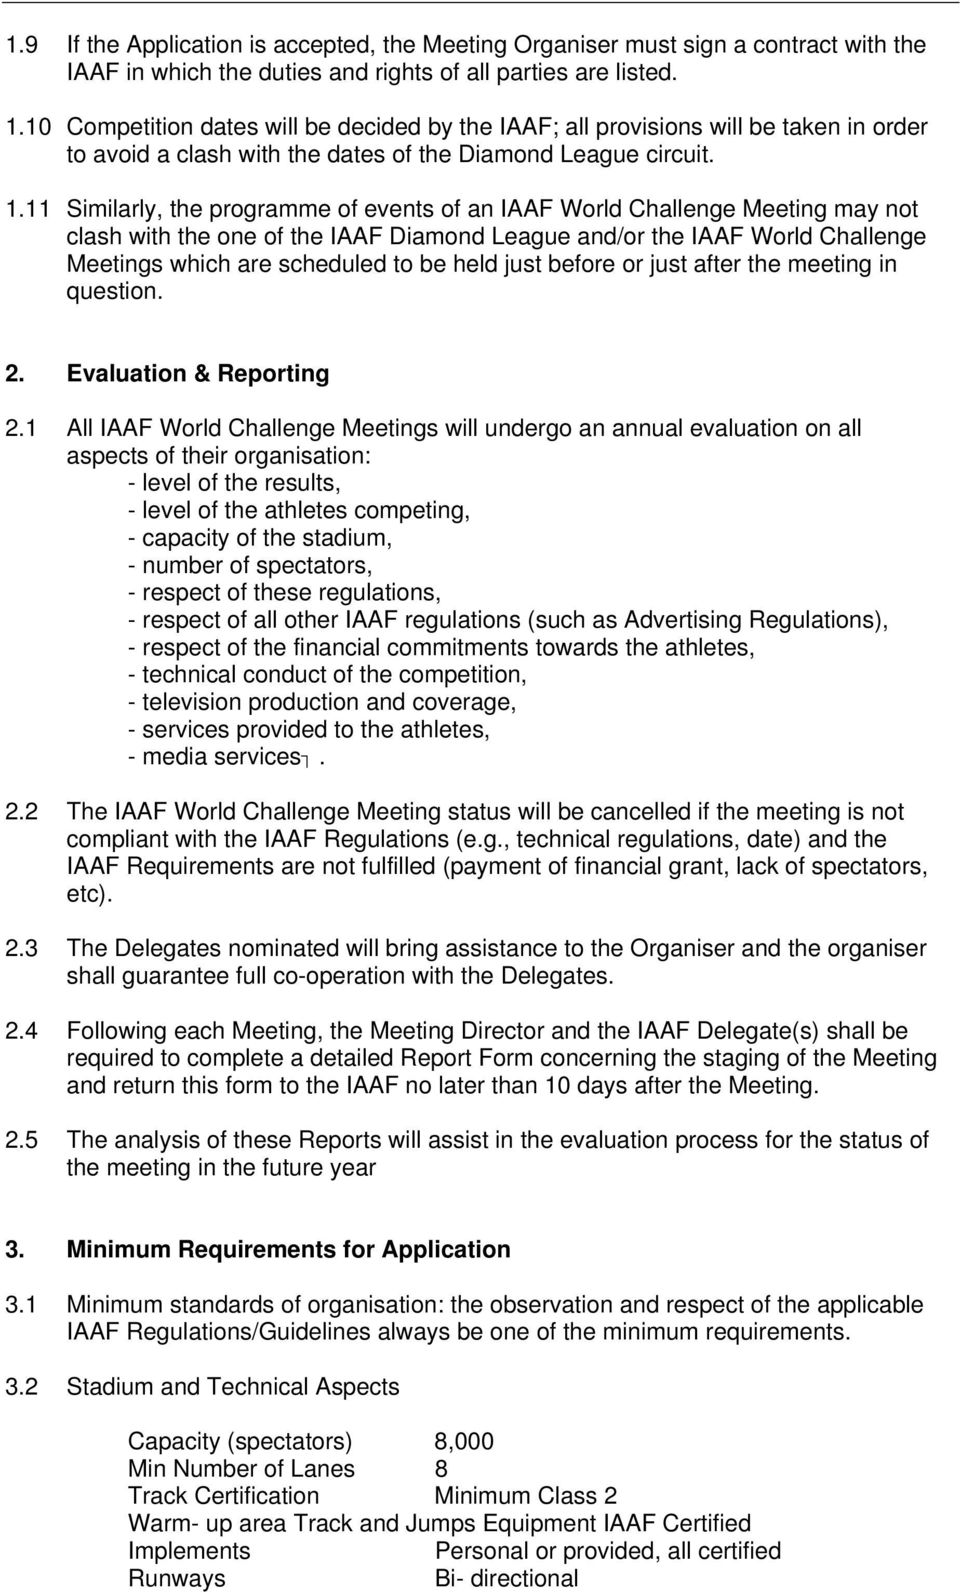 11 Similarly, the programme of events of an IAAF World Challenge Meeting may not clash with the one of the IAAF Diamond League and/or the IAAF World Challenge Meetings which are scheduled to be held